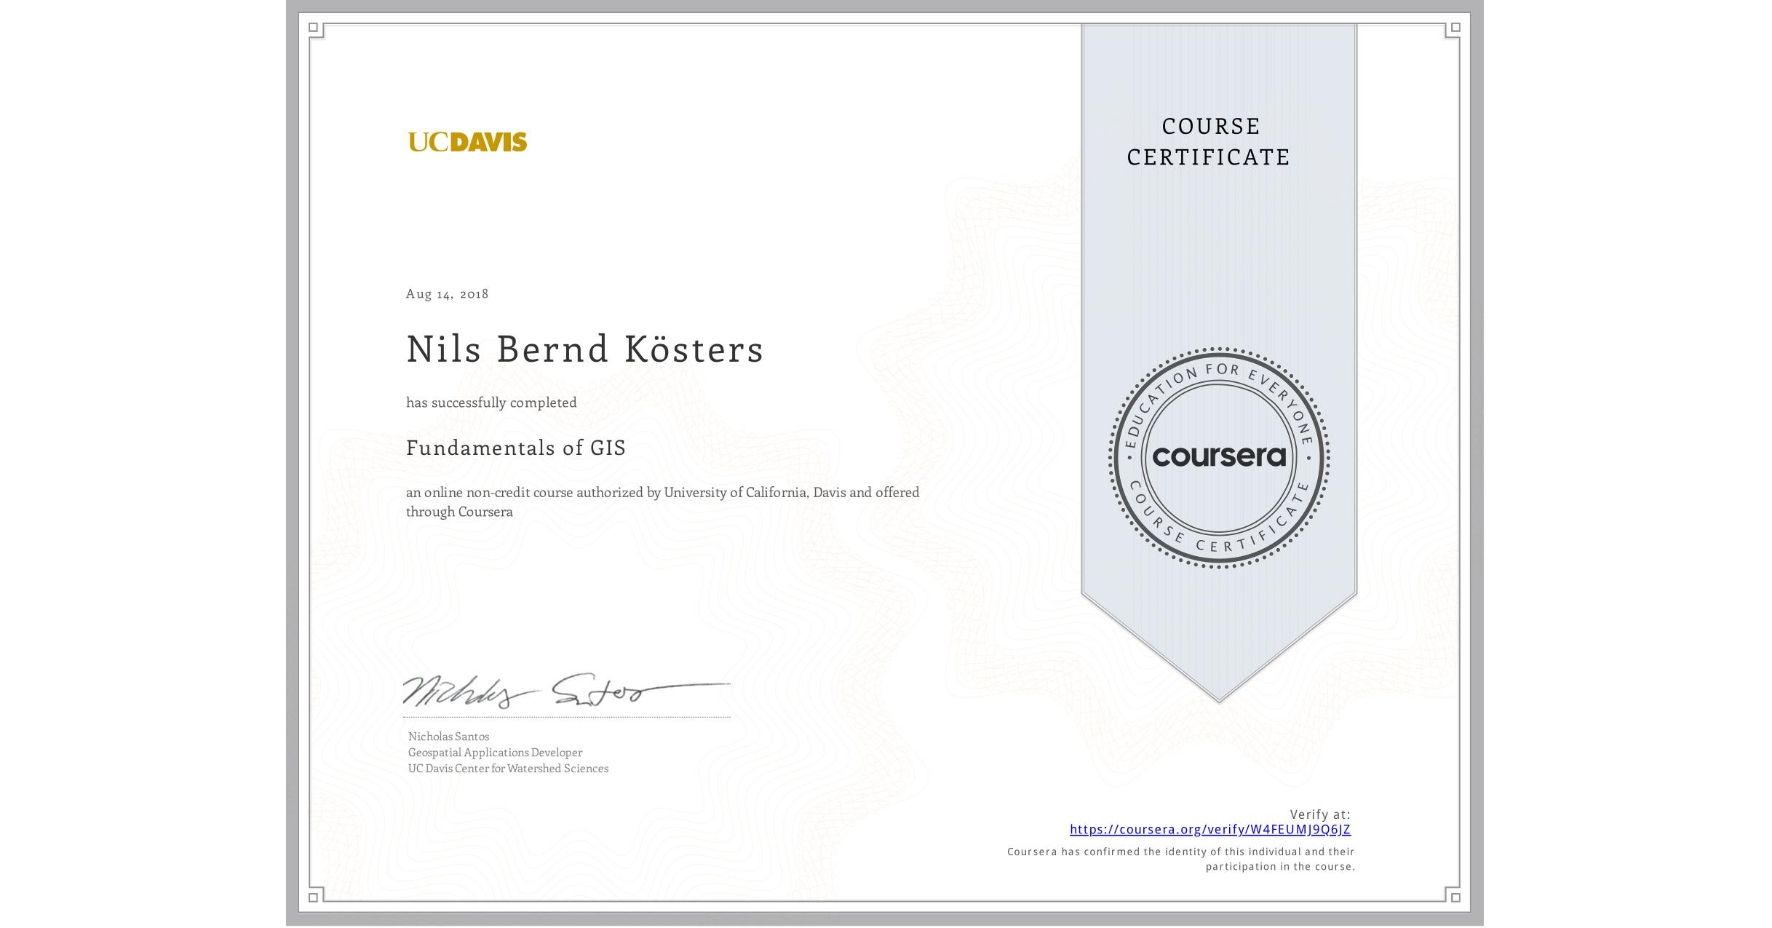 View certificate for Nils Bernd Kösters, Fundamentals of GIS, an online non-credit course authorized by University of California, Davis and offered through Coursera